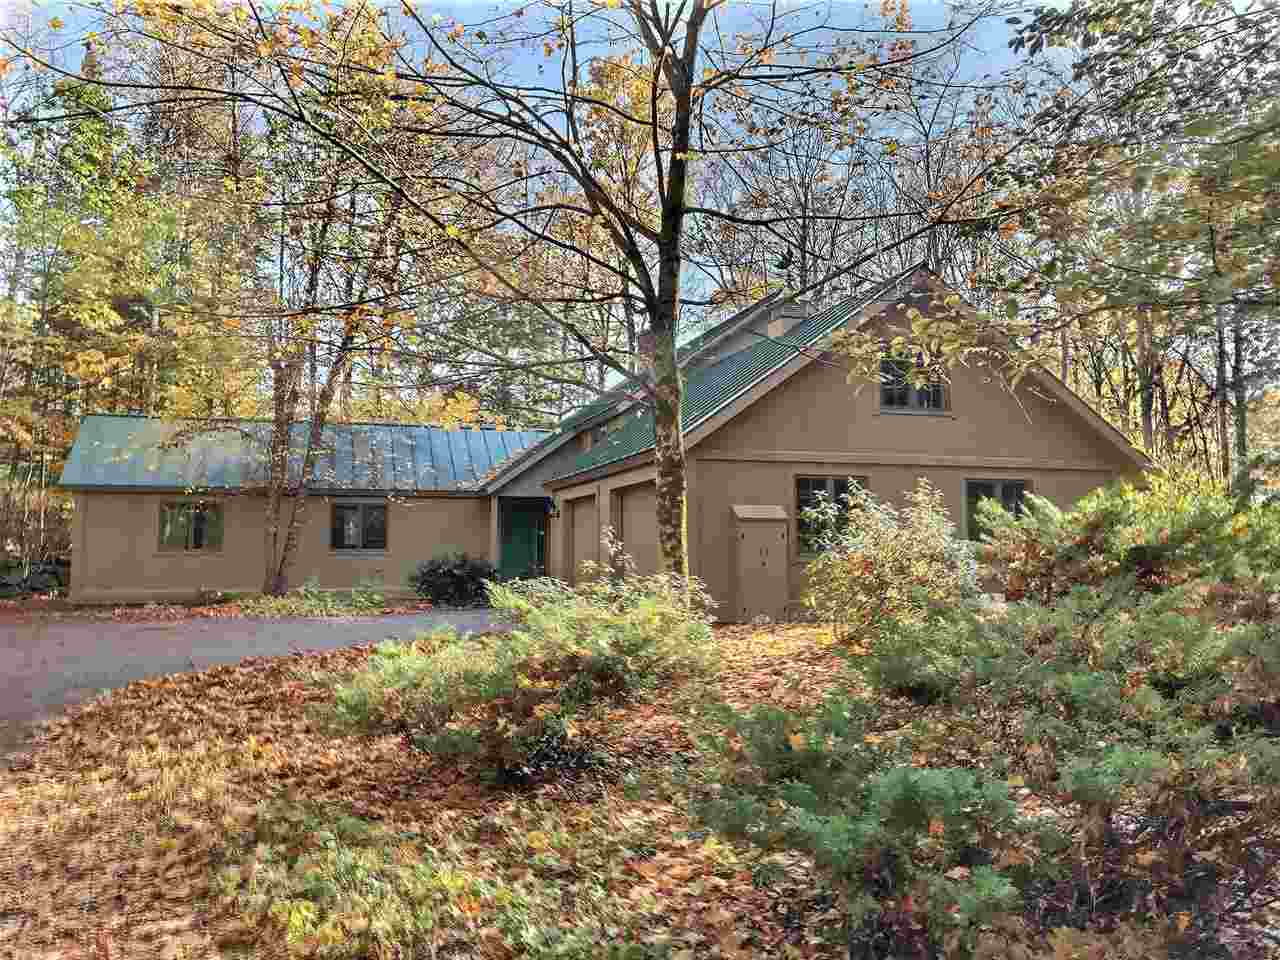 MLS 4783955: 7 Eagle Drive, Grantham NH